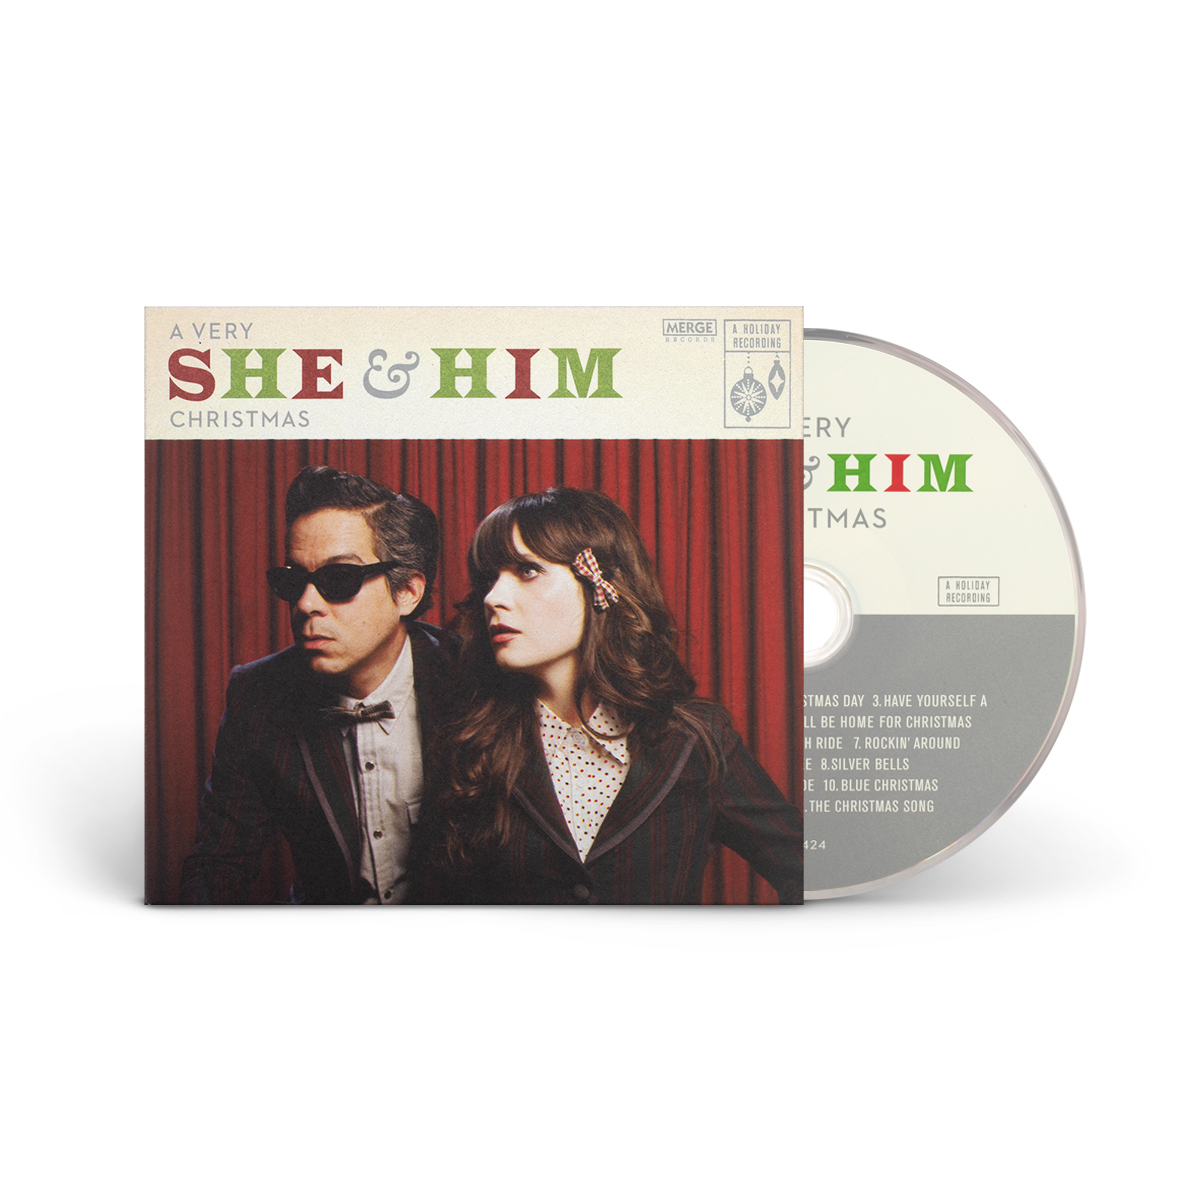 A Very She & Him Christmas CD